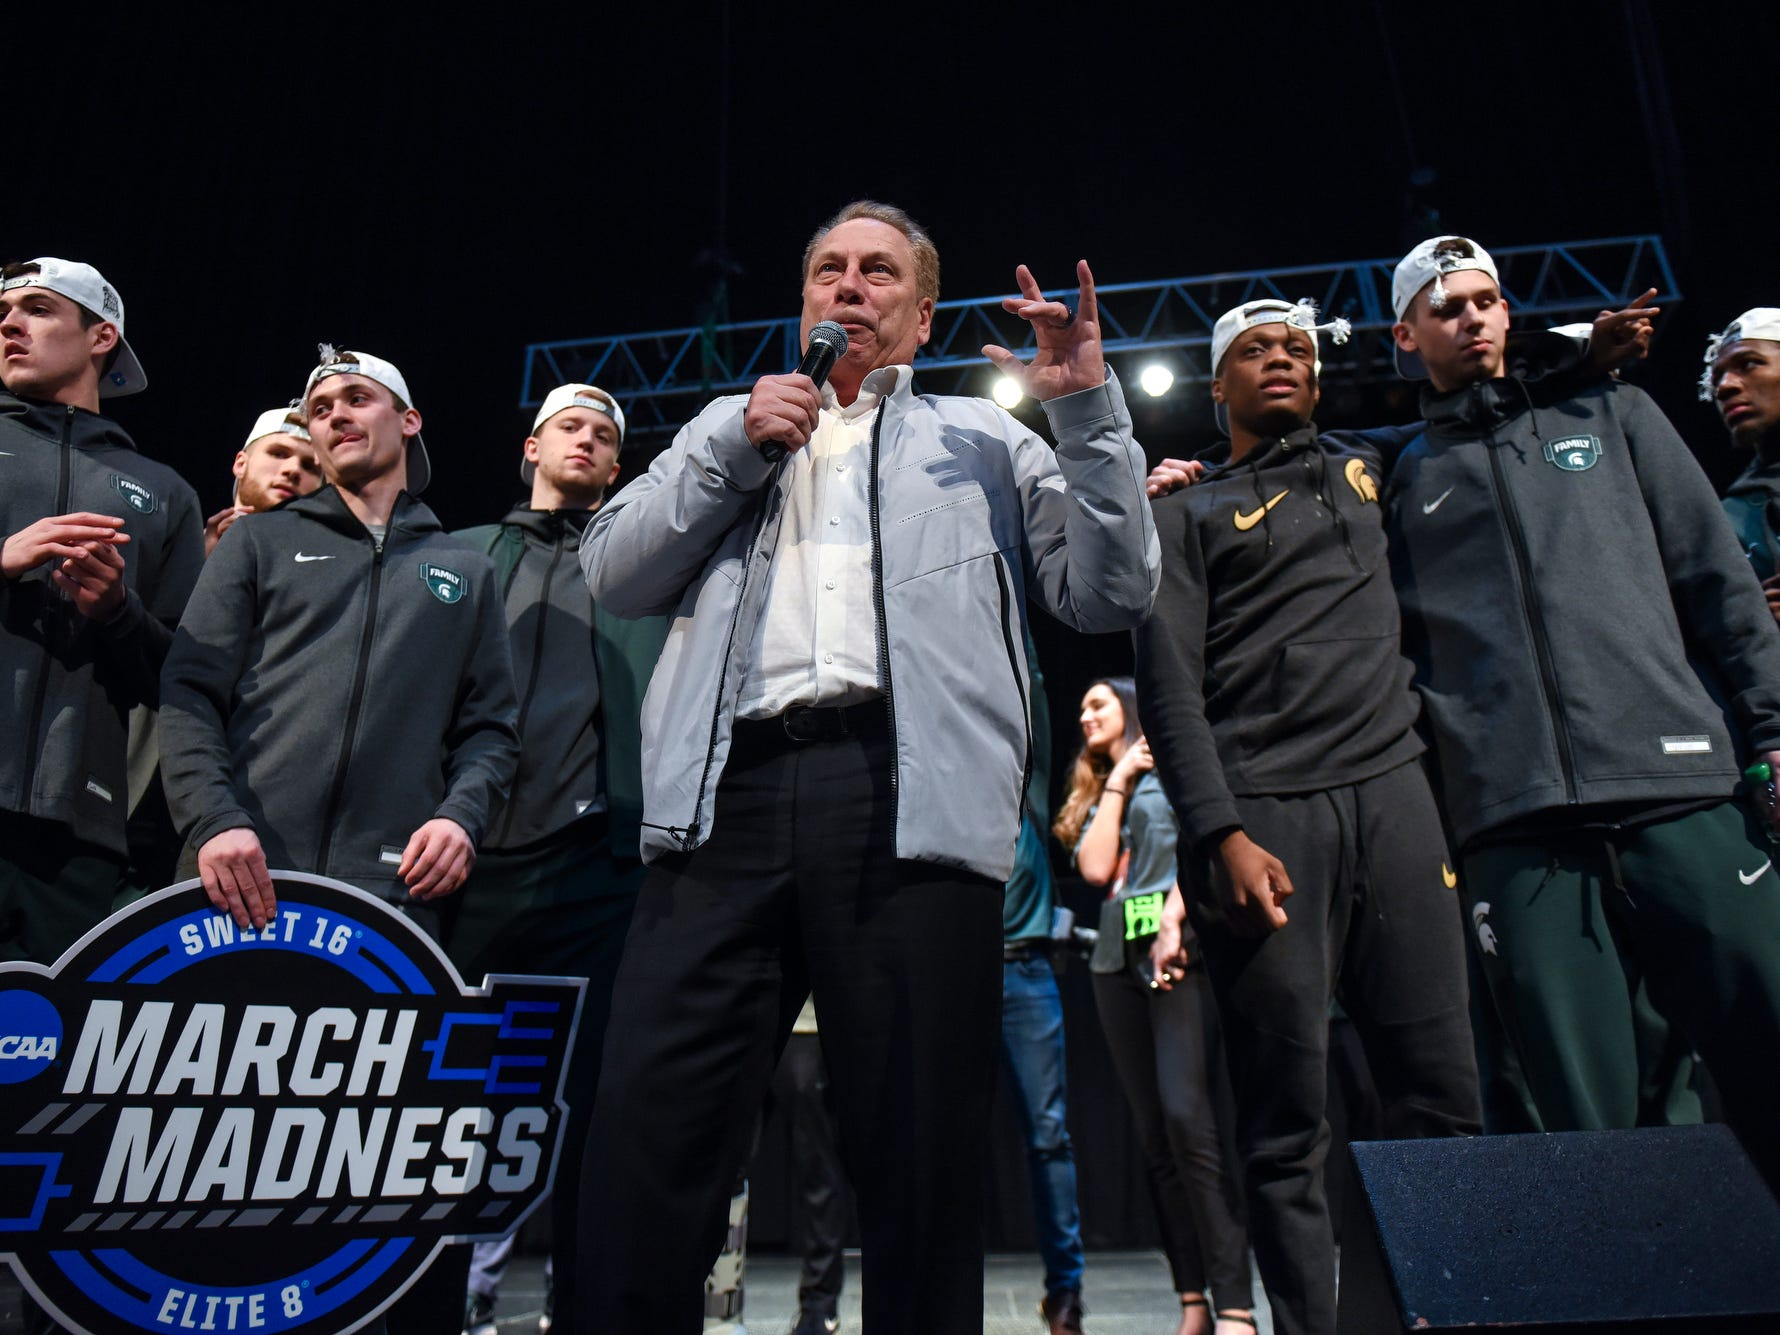 Head coach Tom Izzo addresses the crowd during a rally after MSU's victory over Duke on Sunday, March 31, 2019, at the Breslin Center in East Lansing. The Spartans beat Duke 68-67 to reach the Final Four.